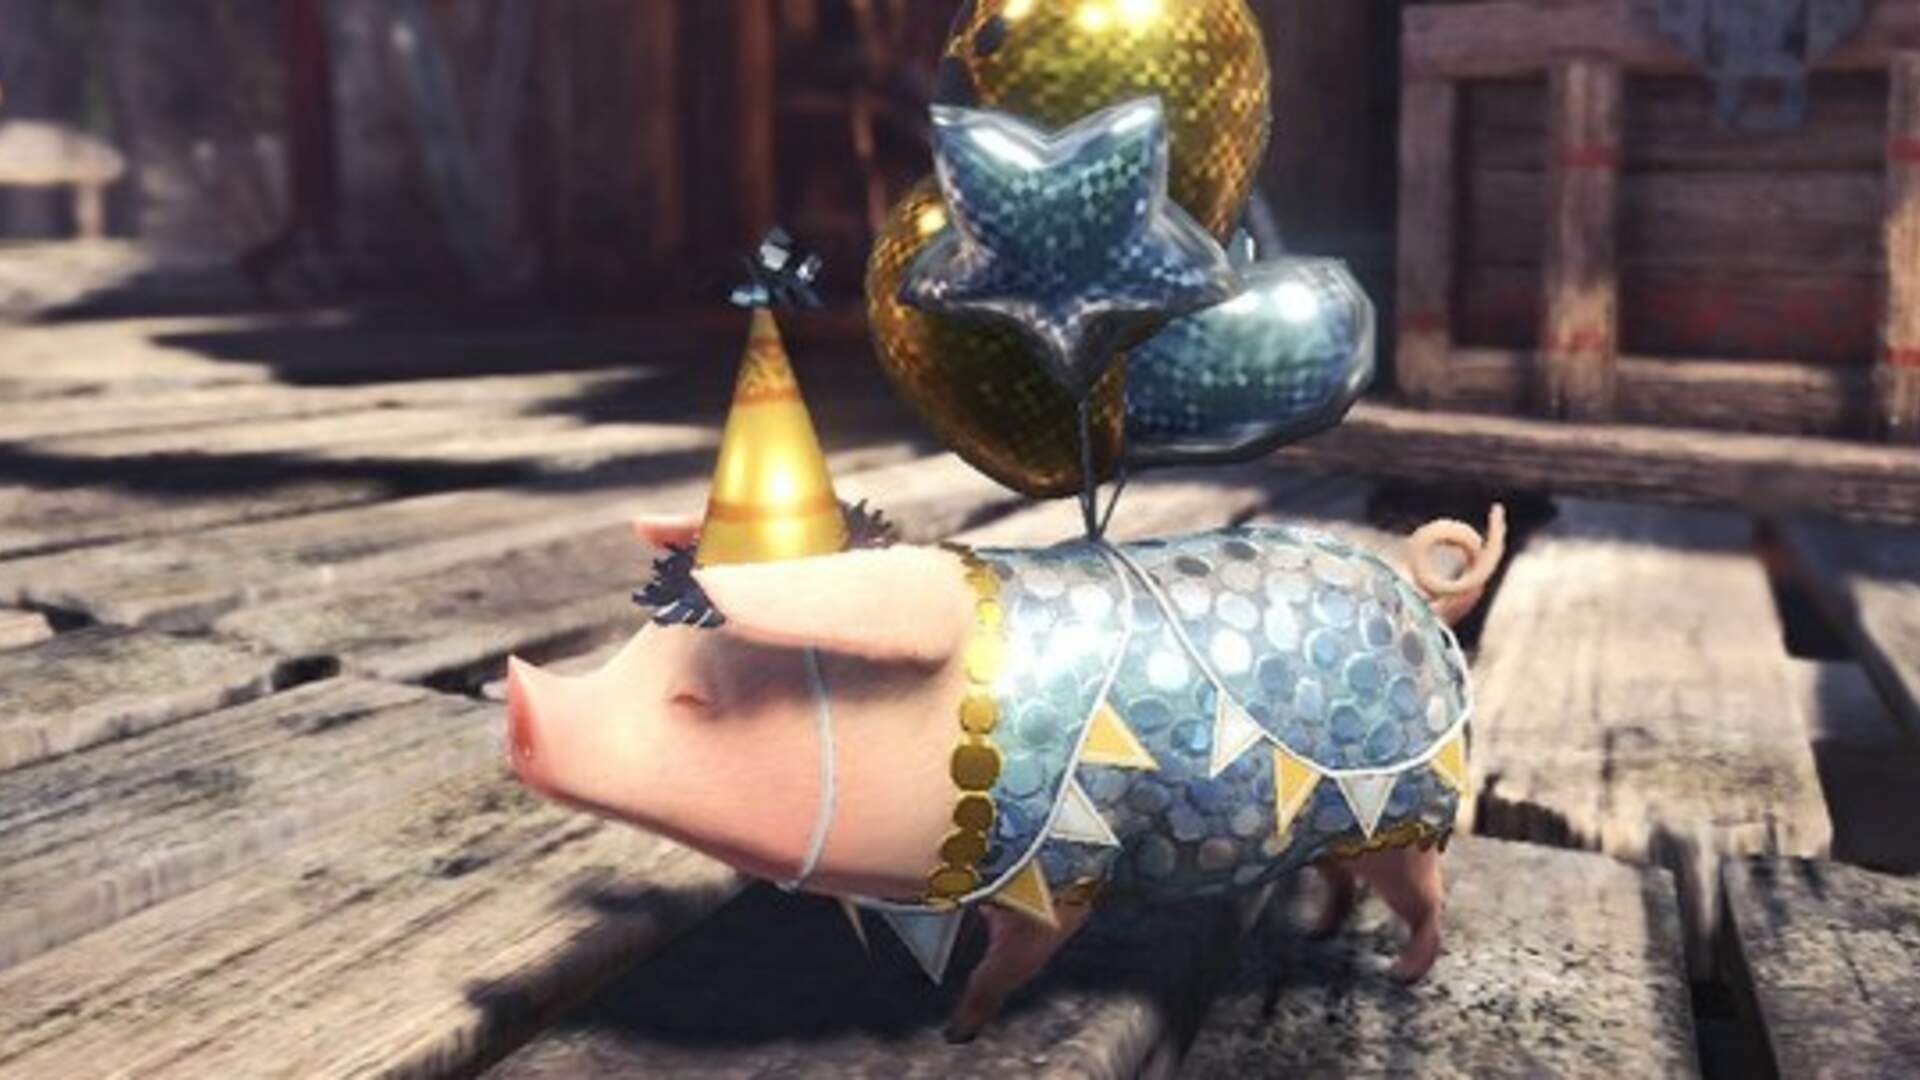 Monster Hunter World Appreciation Fest Tickets, Greatest Jagras Quest, New Armor, Returning Event Quests - Everything we Know